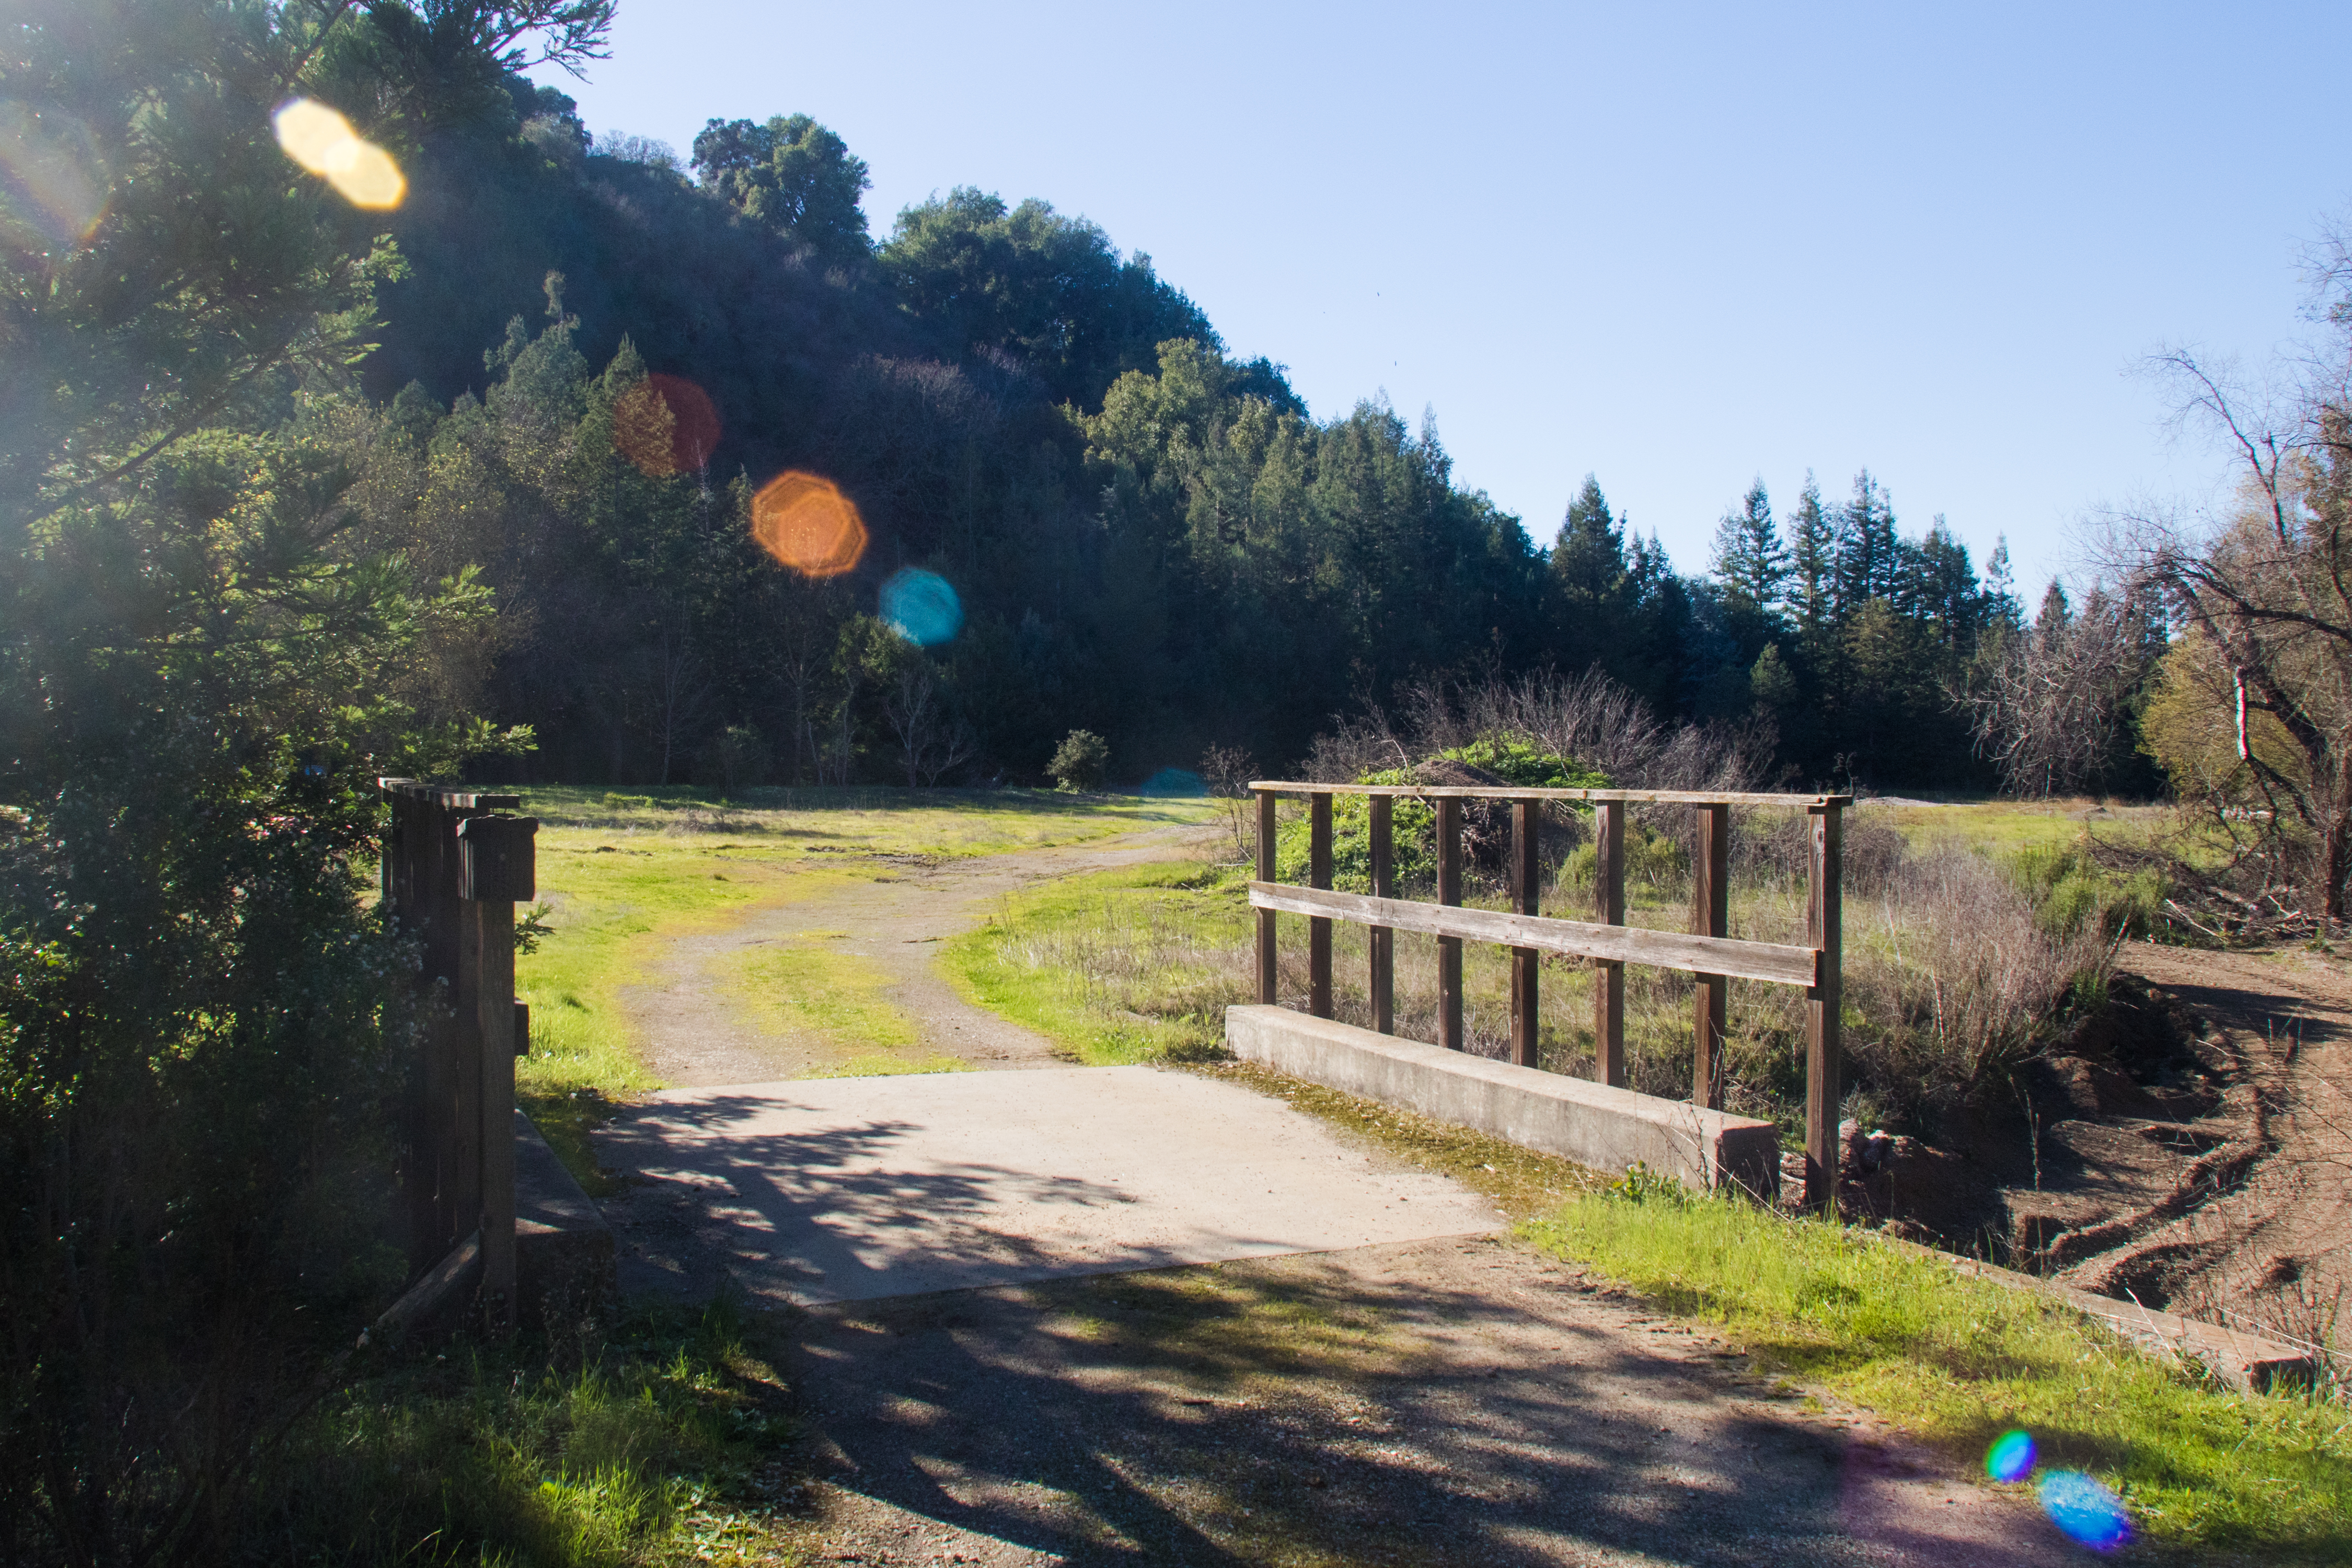 A footbridge crosses over Buckeye Creek at the entrance to the city's new 7.7 acre parcel of land at Foothills Park.